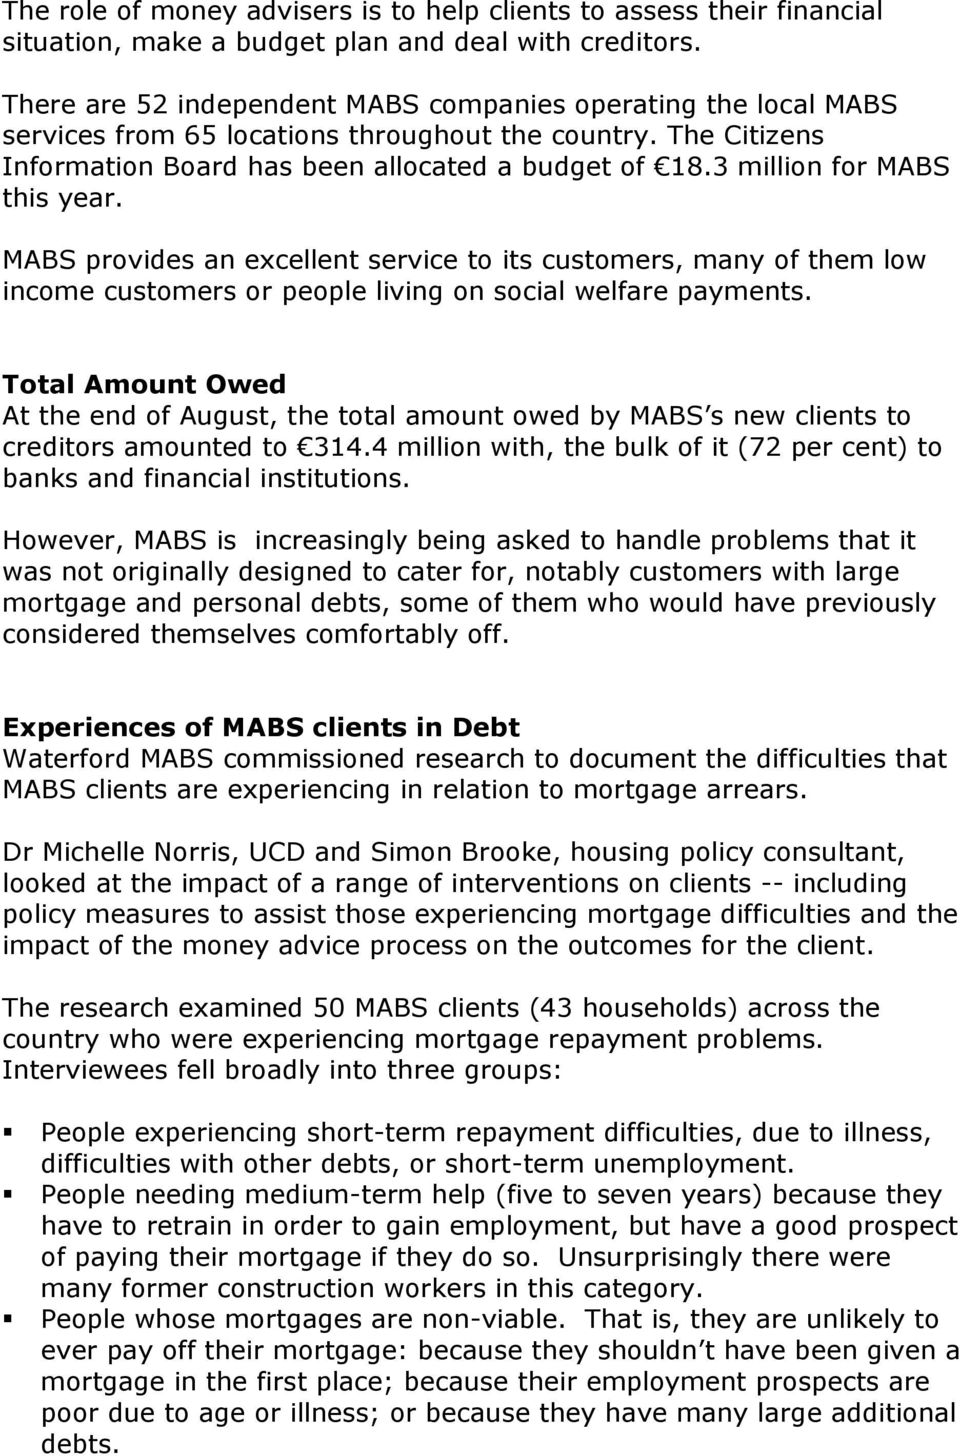 3 million for MABS this year. MABS provides an excellent service to its customers, many of them low income customers or people living on social welfare payments.